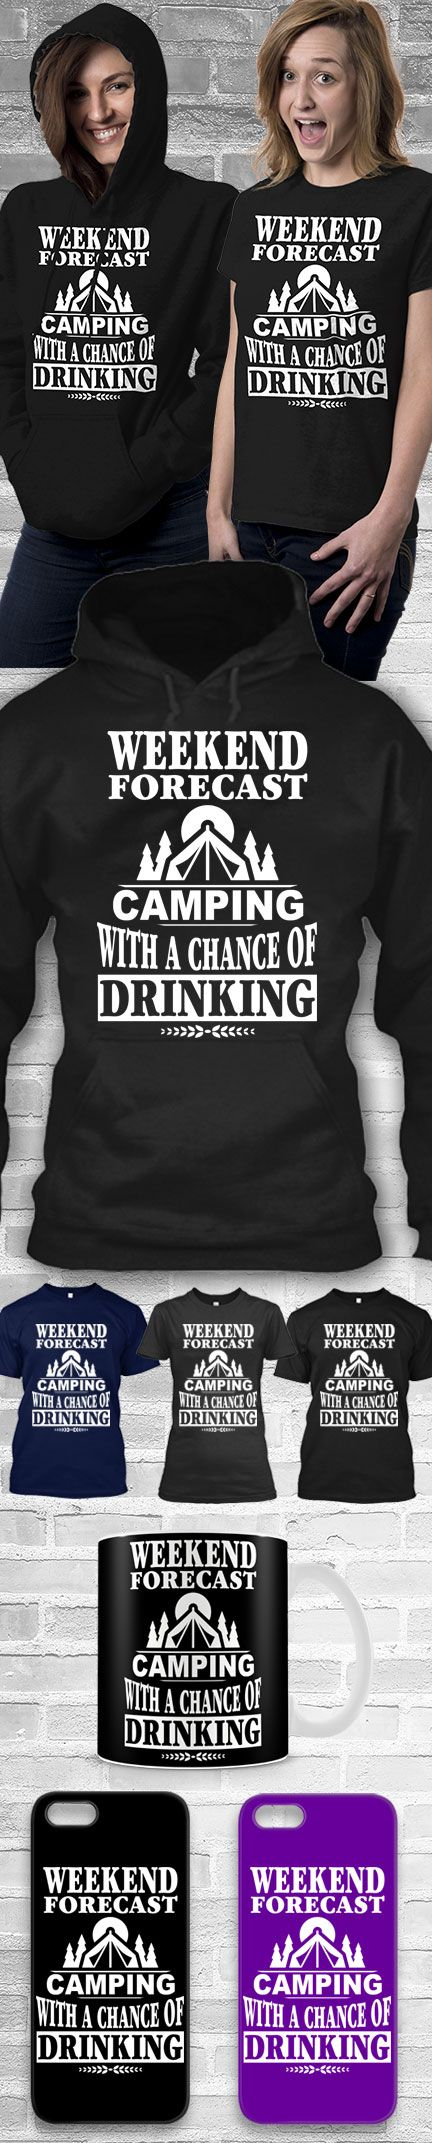 Camping Weekend Forecast Shirts! Click The Image To Buy It Now or Tag Someone You Want To Buy This For.  #camping